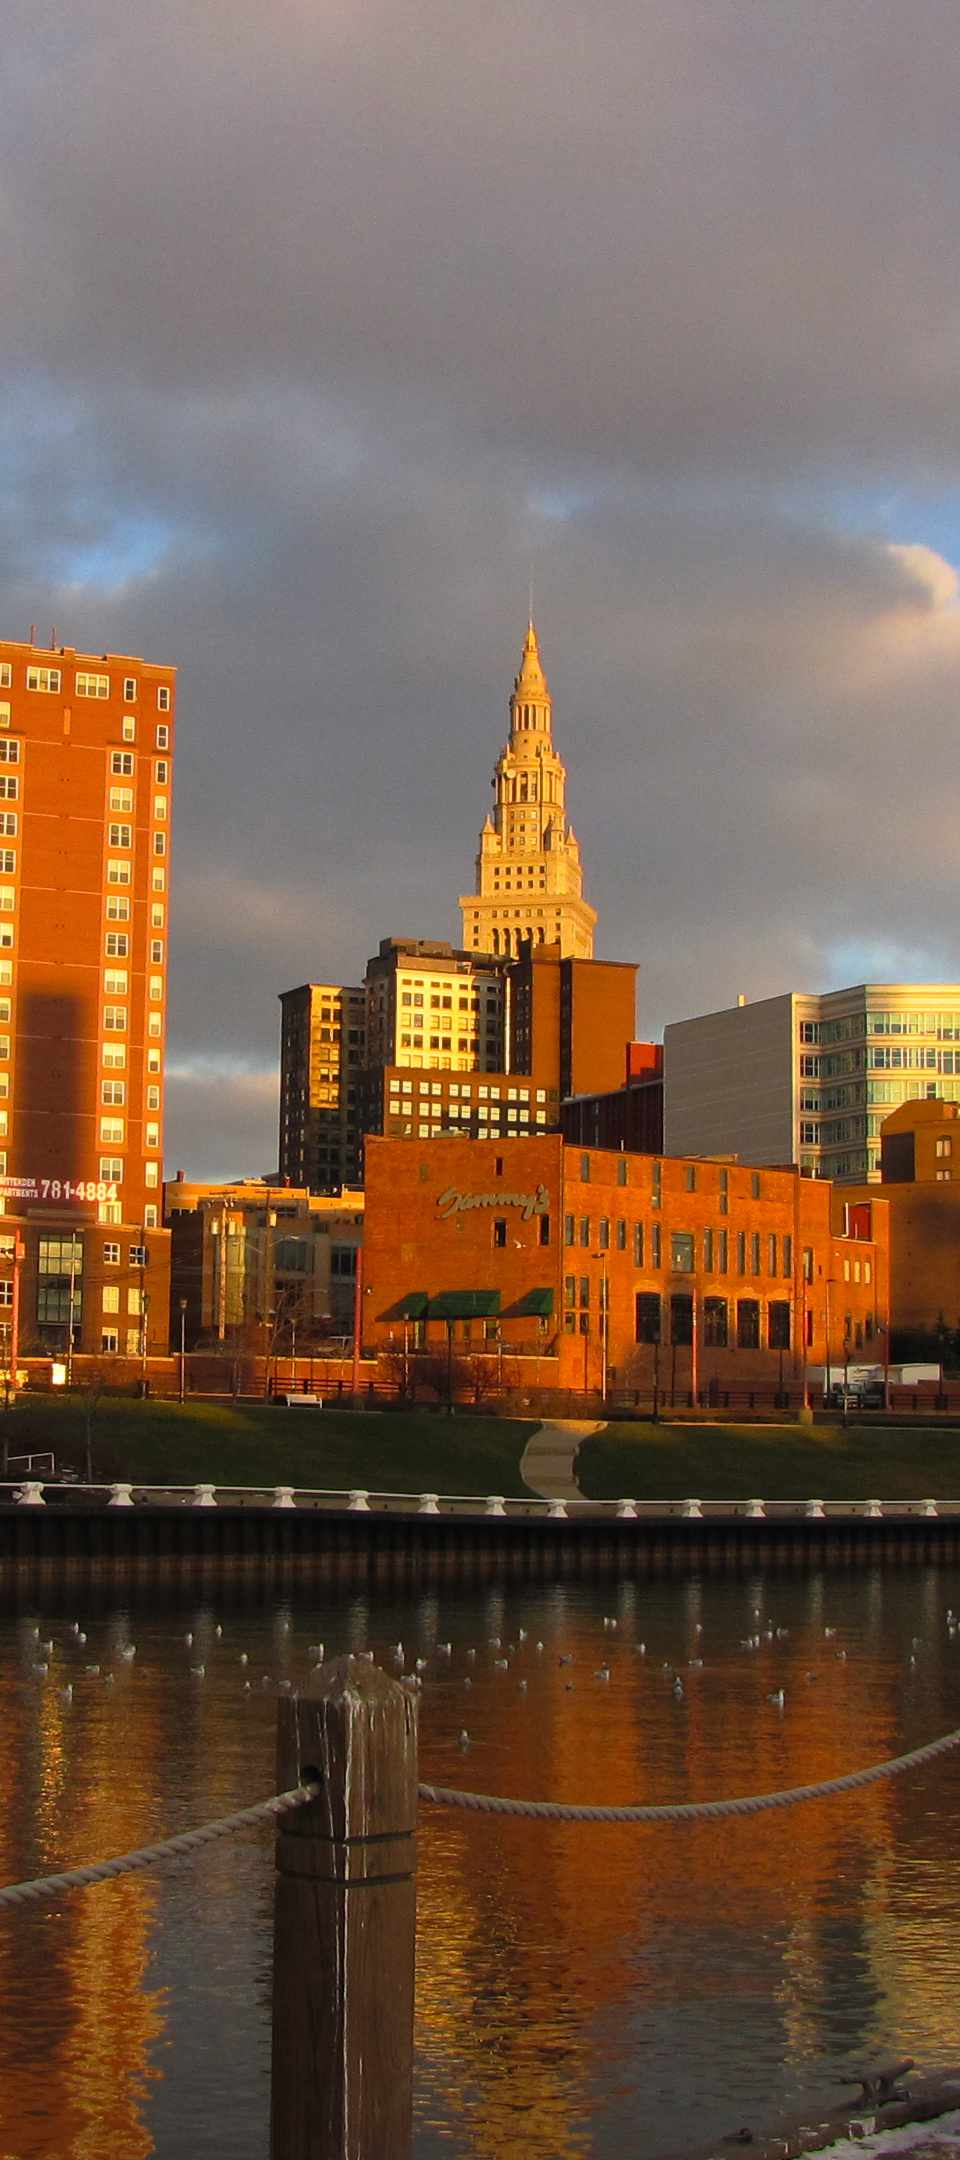 The Flats and downtown Cleveland, Ohio